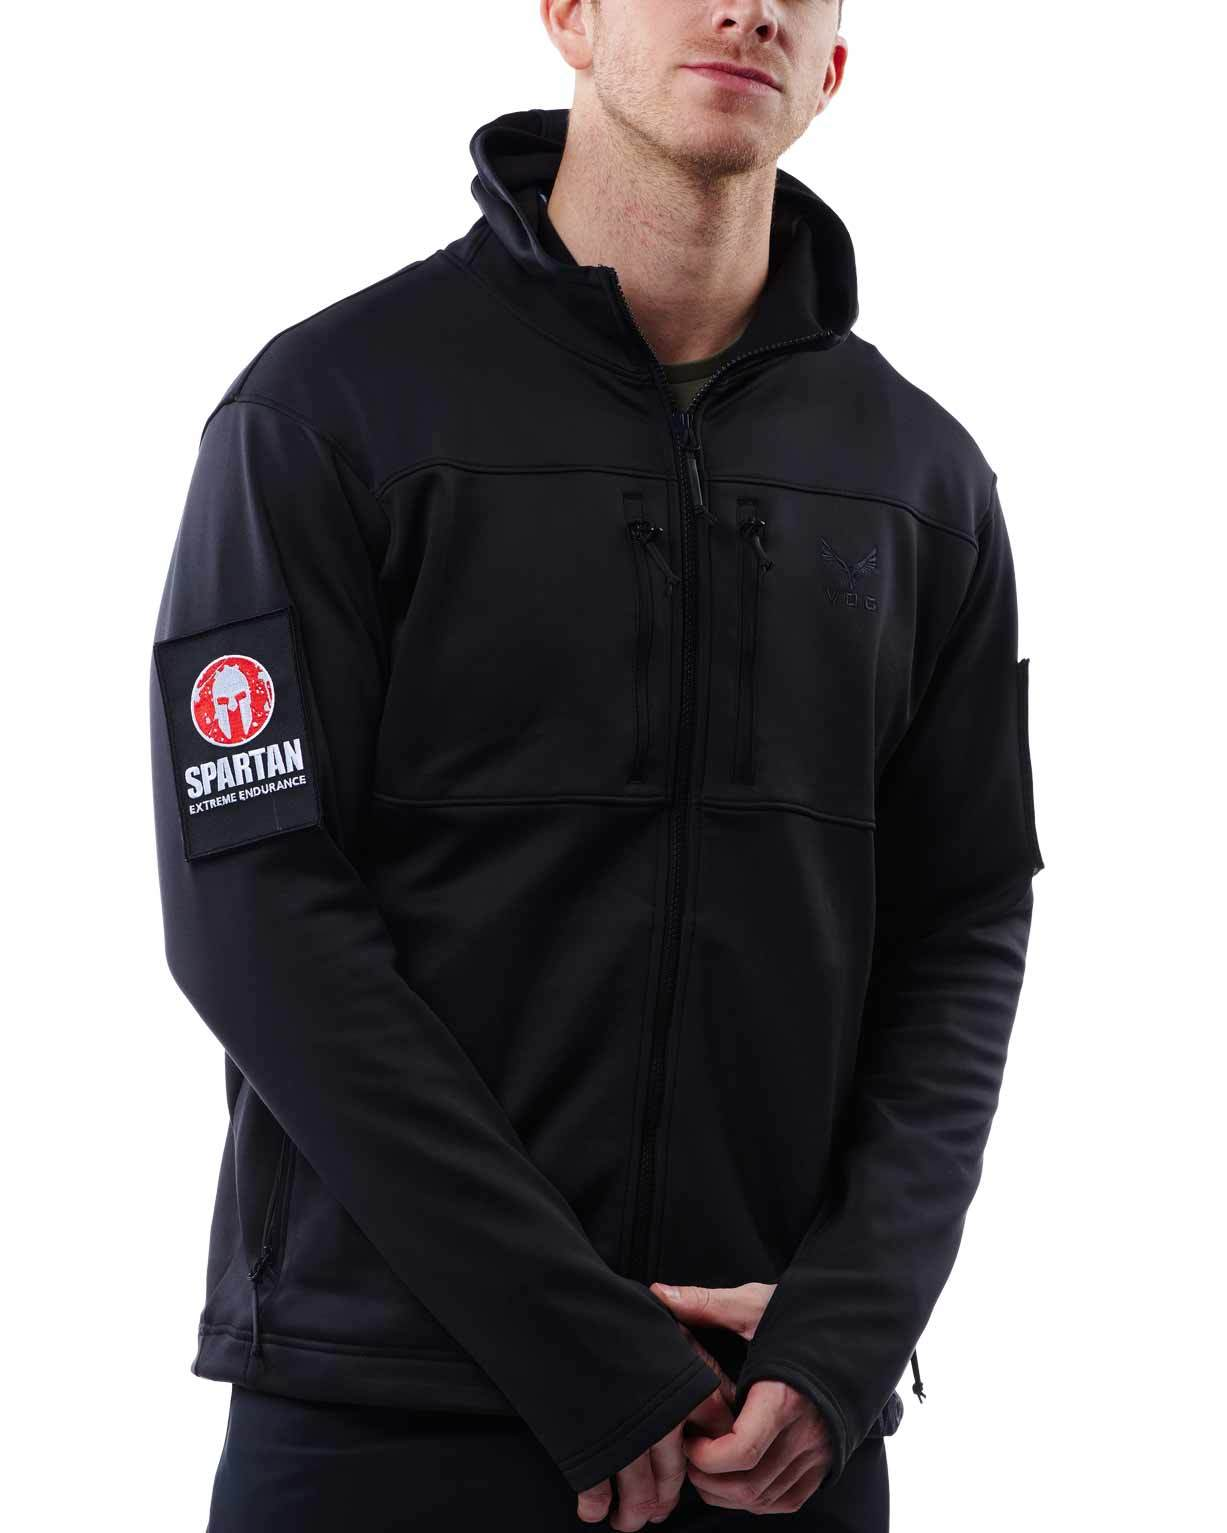 SPARTAN by Virtus Helios Hooded Jacket